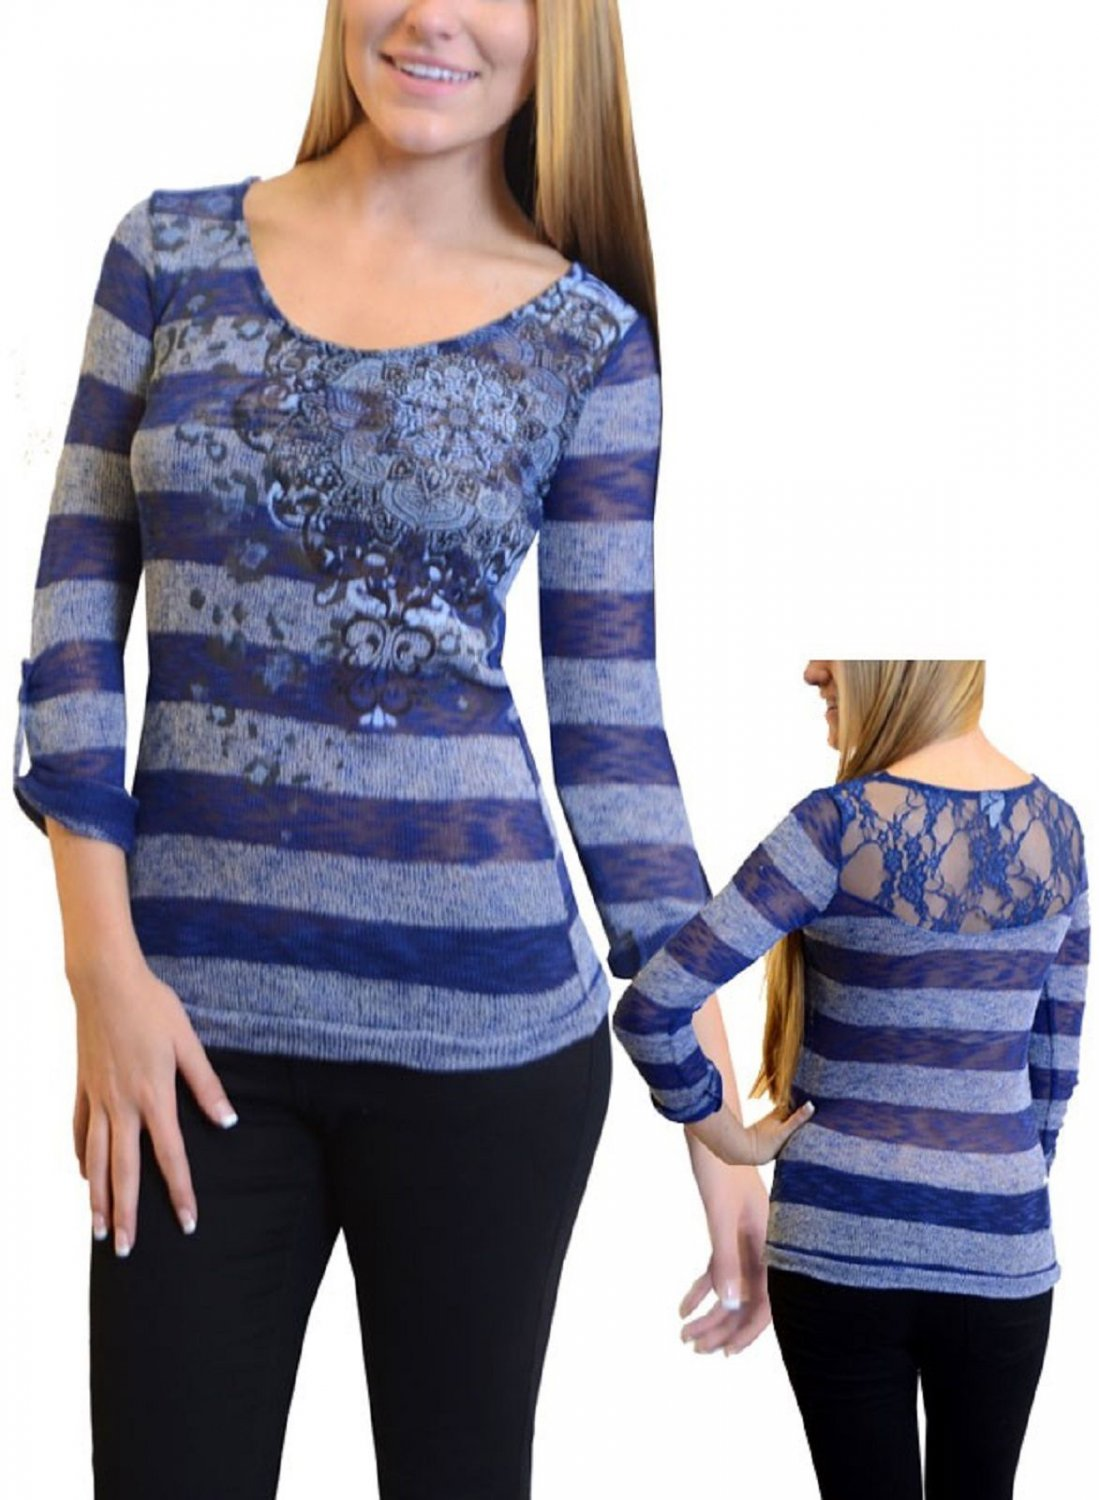 Vanity Womens S Blue Stripe Knit Shirt with Lace Back New